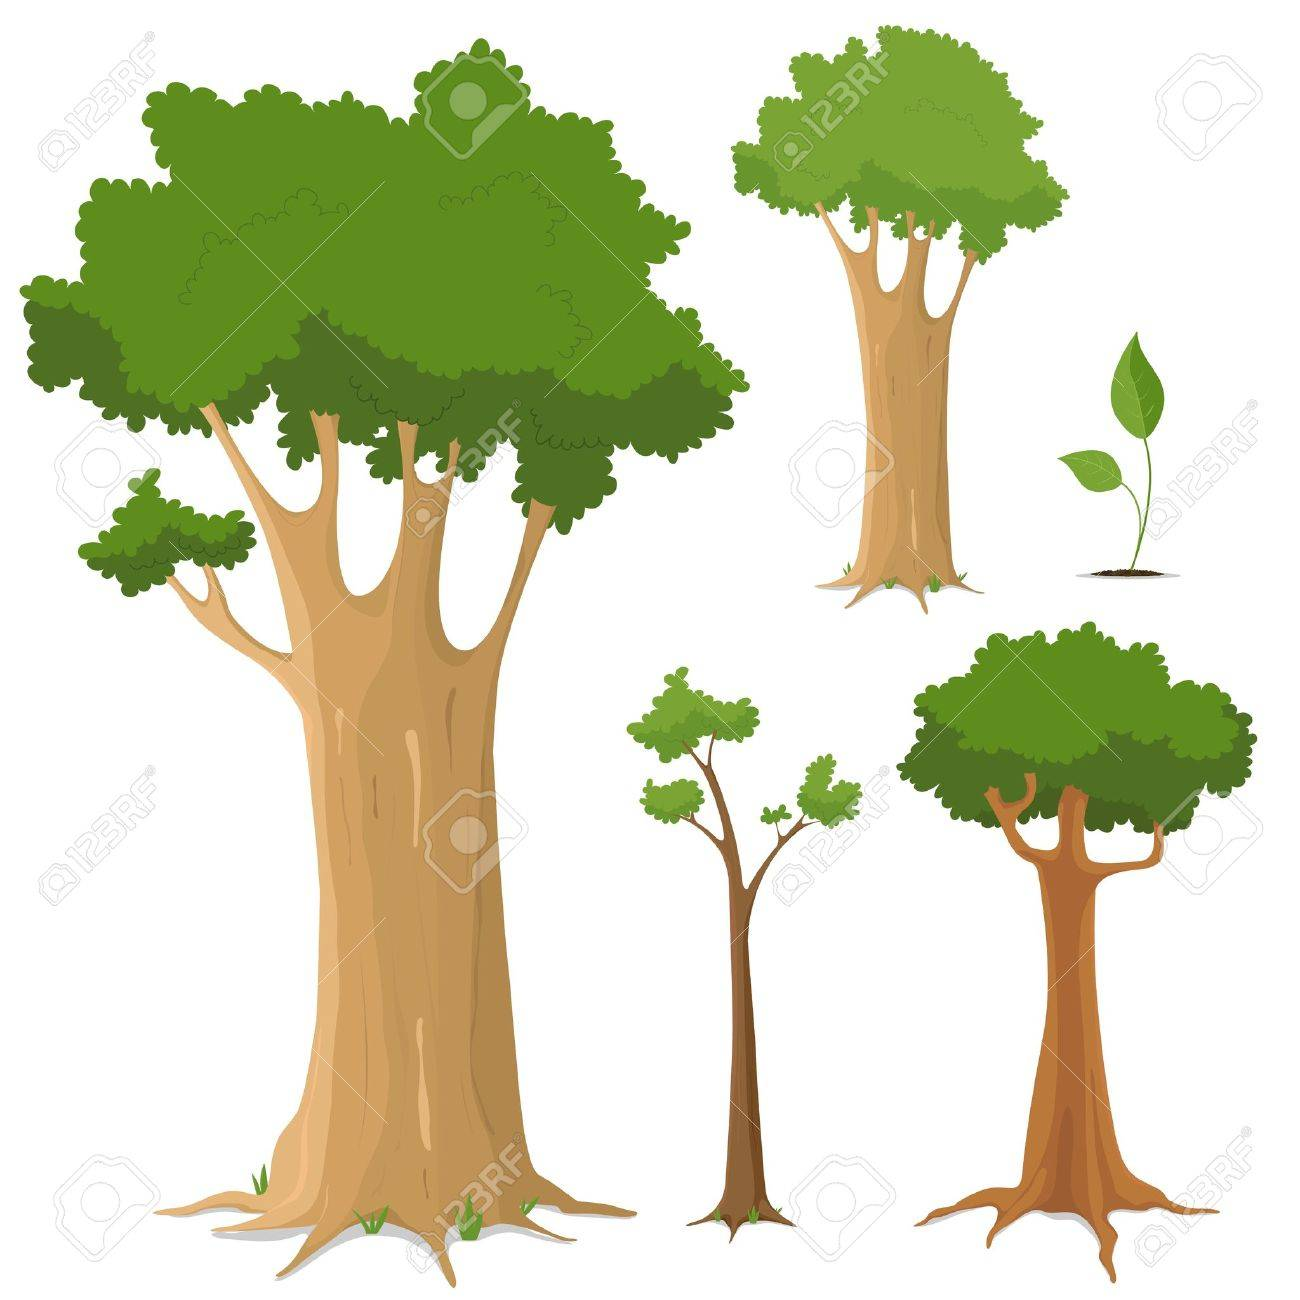 Illustration of a set of variety of trees, young and old - 11248593